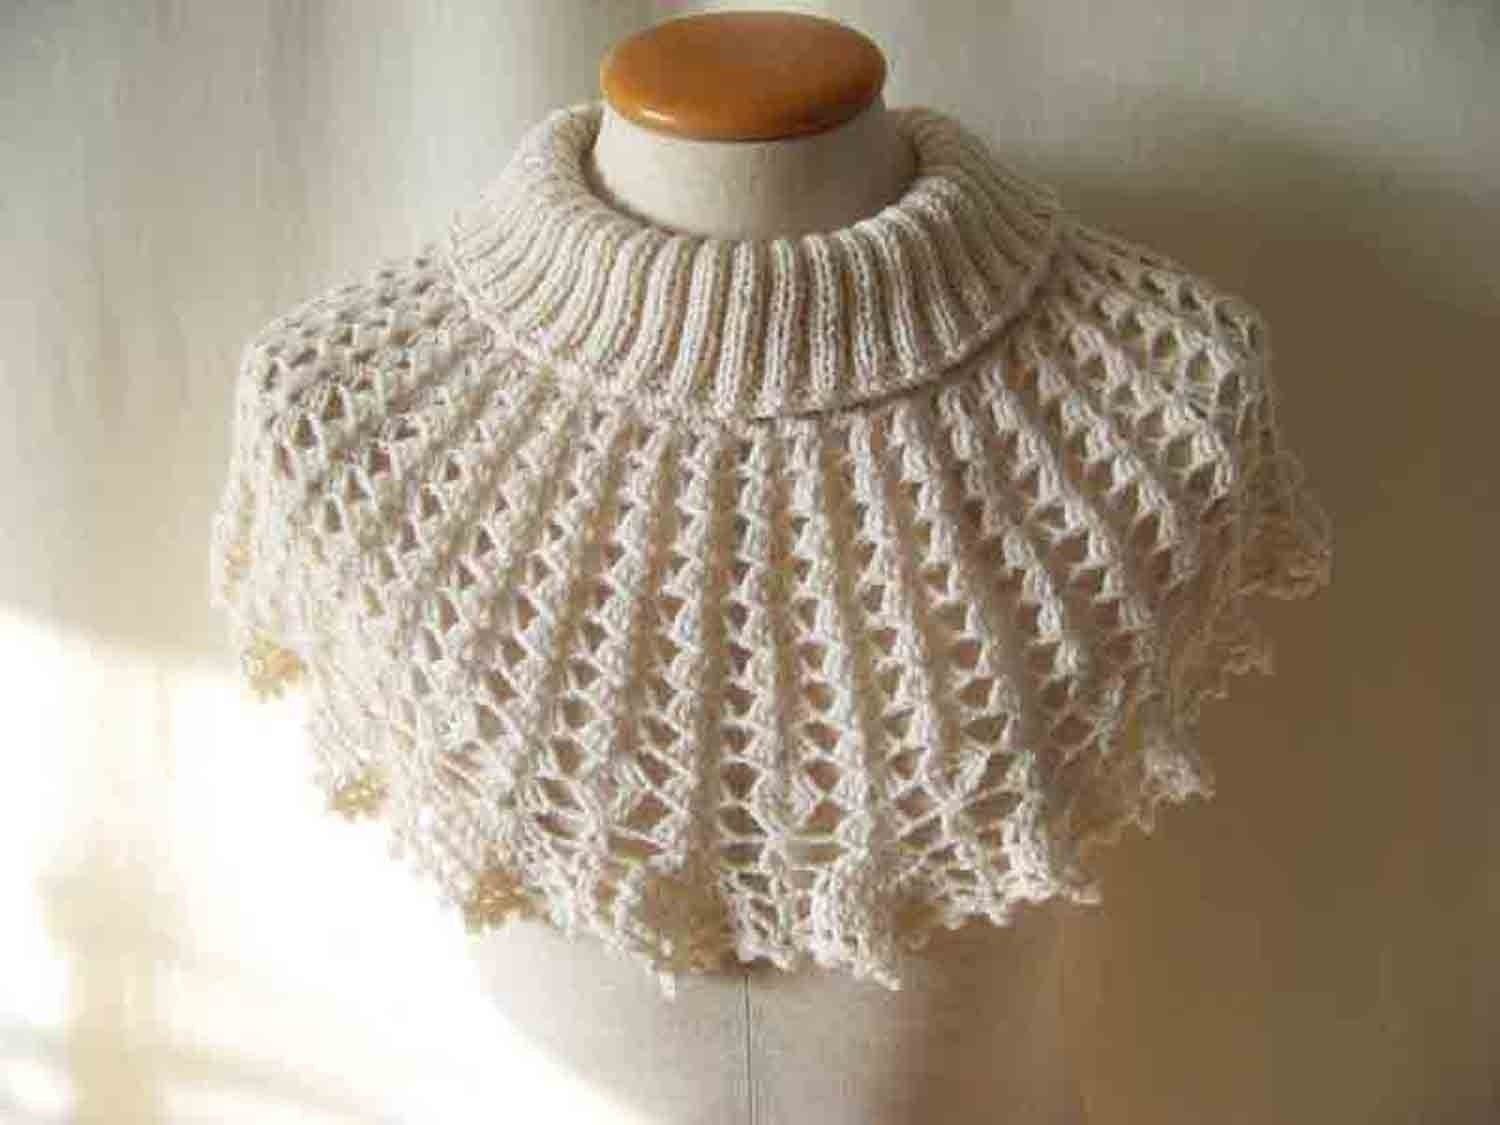 Knitting And Crochet Patterns : Capelet Knitting Pattern Free Capelet Knitting Pattern Free - the